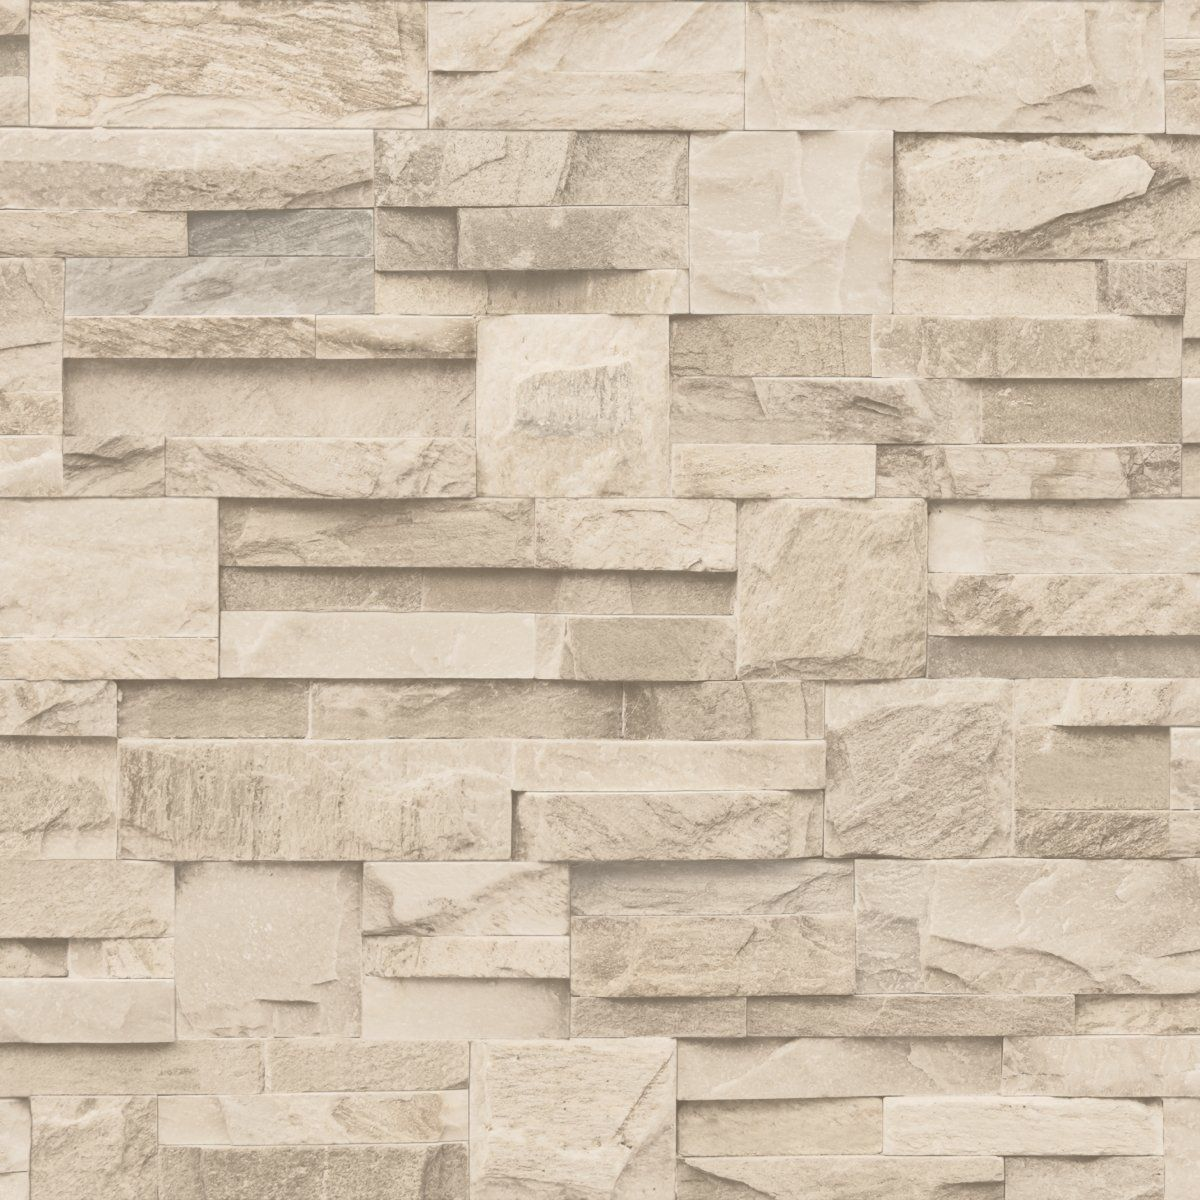 New Luxury Muriva Slate Stone Brick Wall Effect Textured Vinyl Wallpaper Beige J27407 Amazon Co Uk Diy Brick Effect Wallpaper Slate Wallpaper Stone Wallpaper